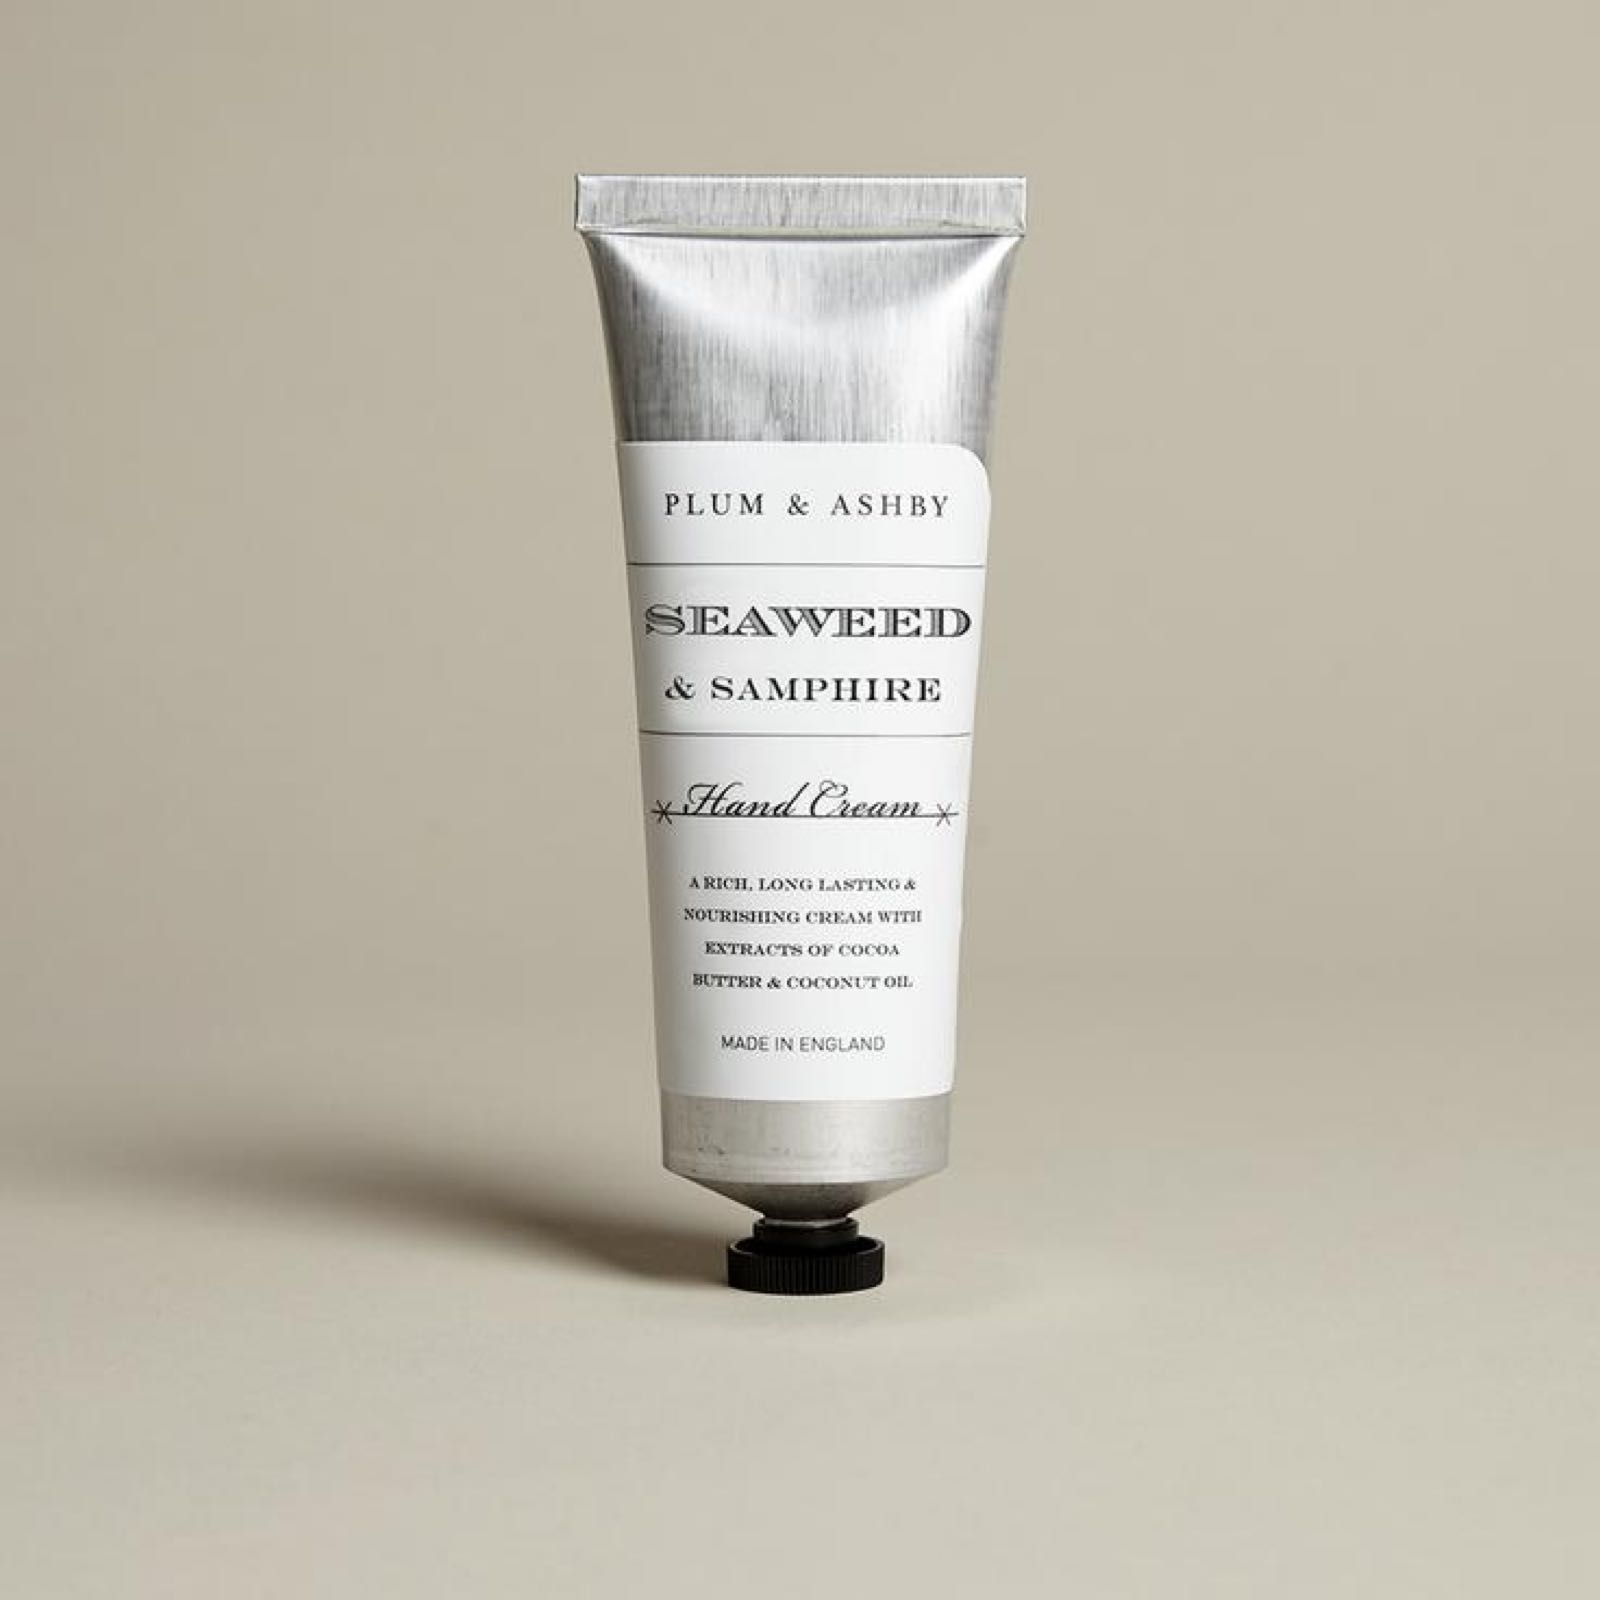 Plum & Ashby Seaweed & Samphire Hand Cream  75ml Material: A rich and long lasting hand cream with extracts of cocoa butter and coconut oil